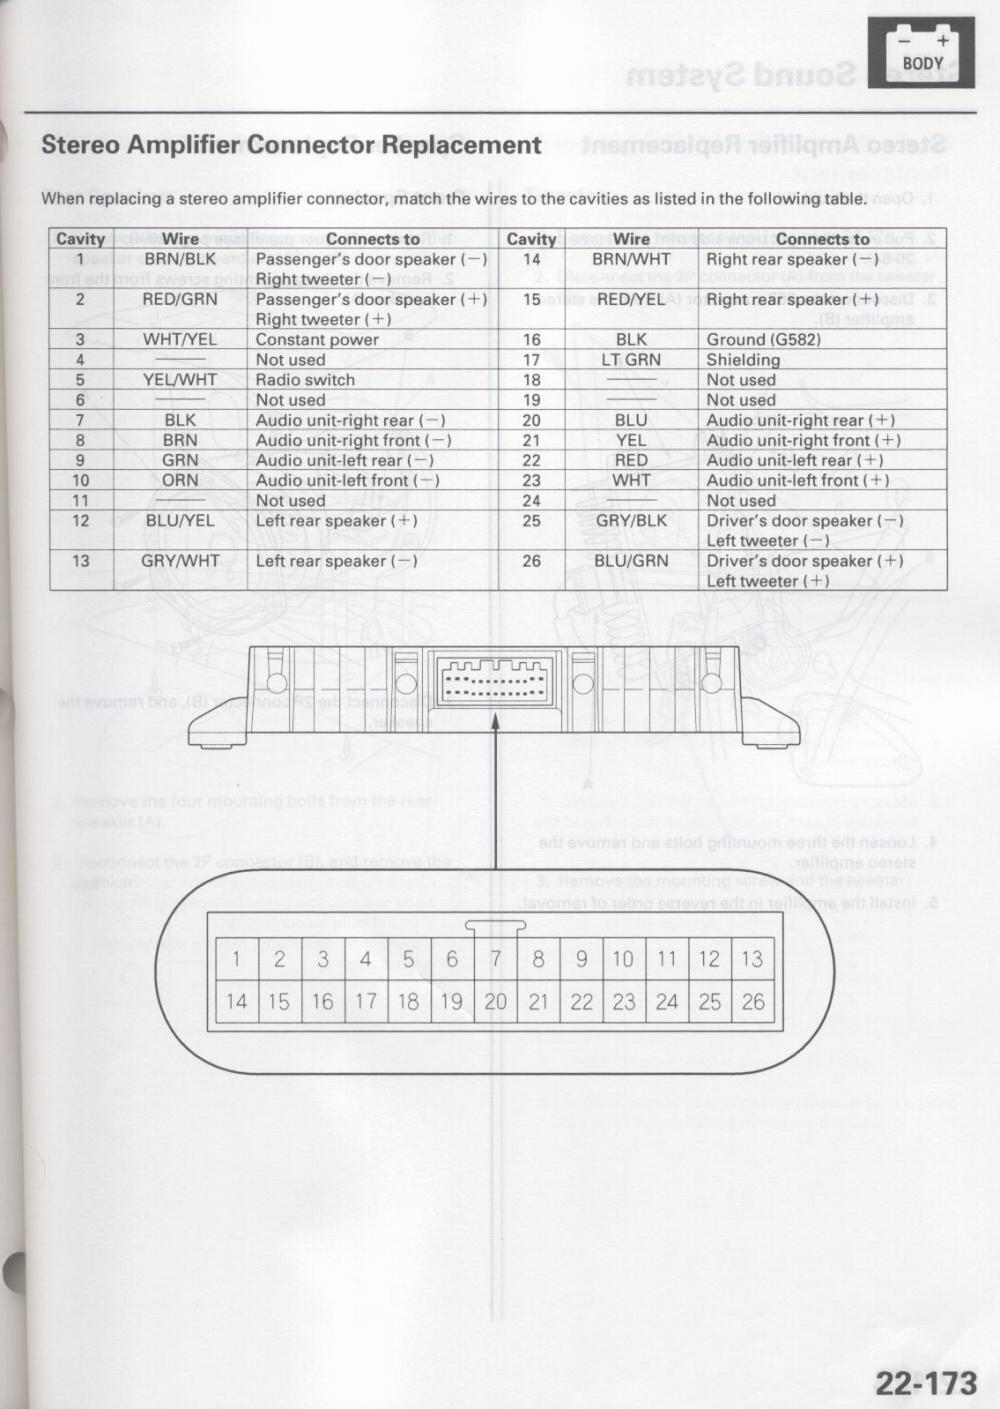 Car Radio Stereo Audio Wiring Diagram Autoradio Connector Wire Diagrams Automotive Installation Schematic Schema Esquema De Conexiones Anschlusskammern Konektor